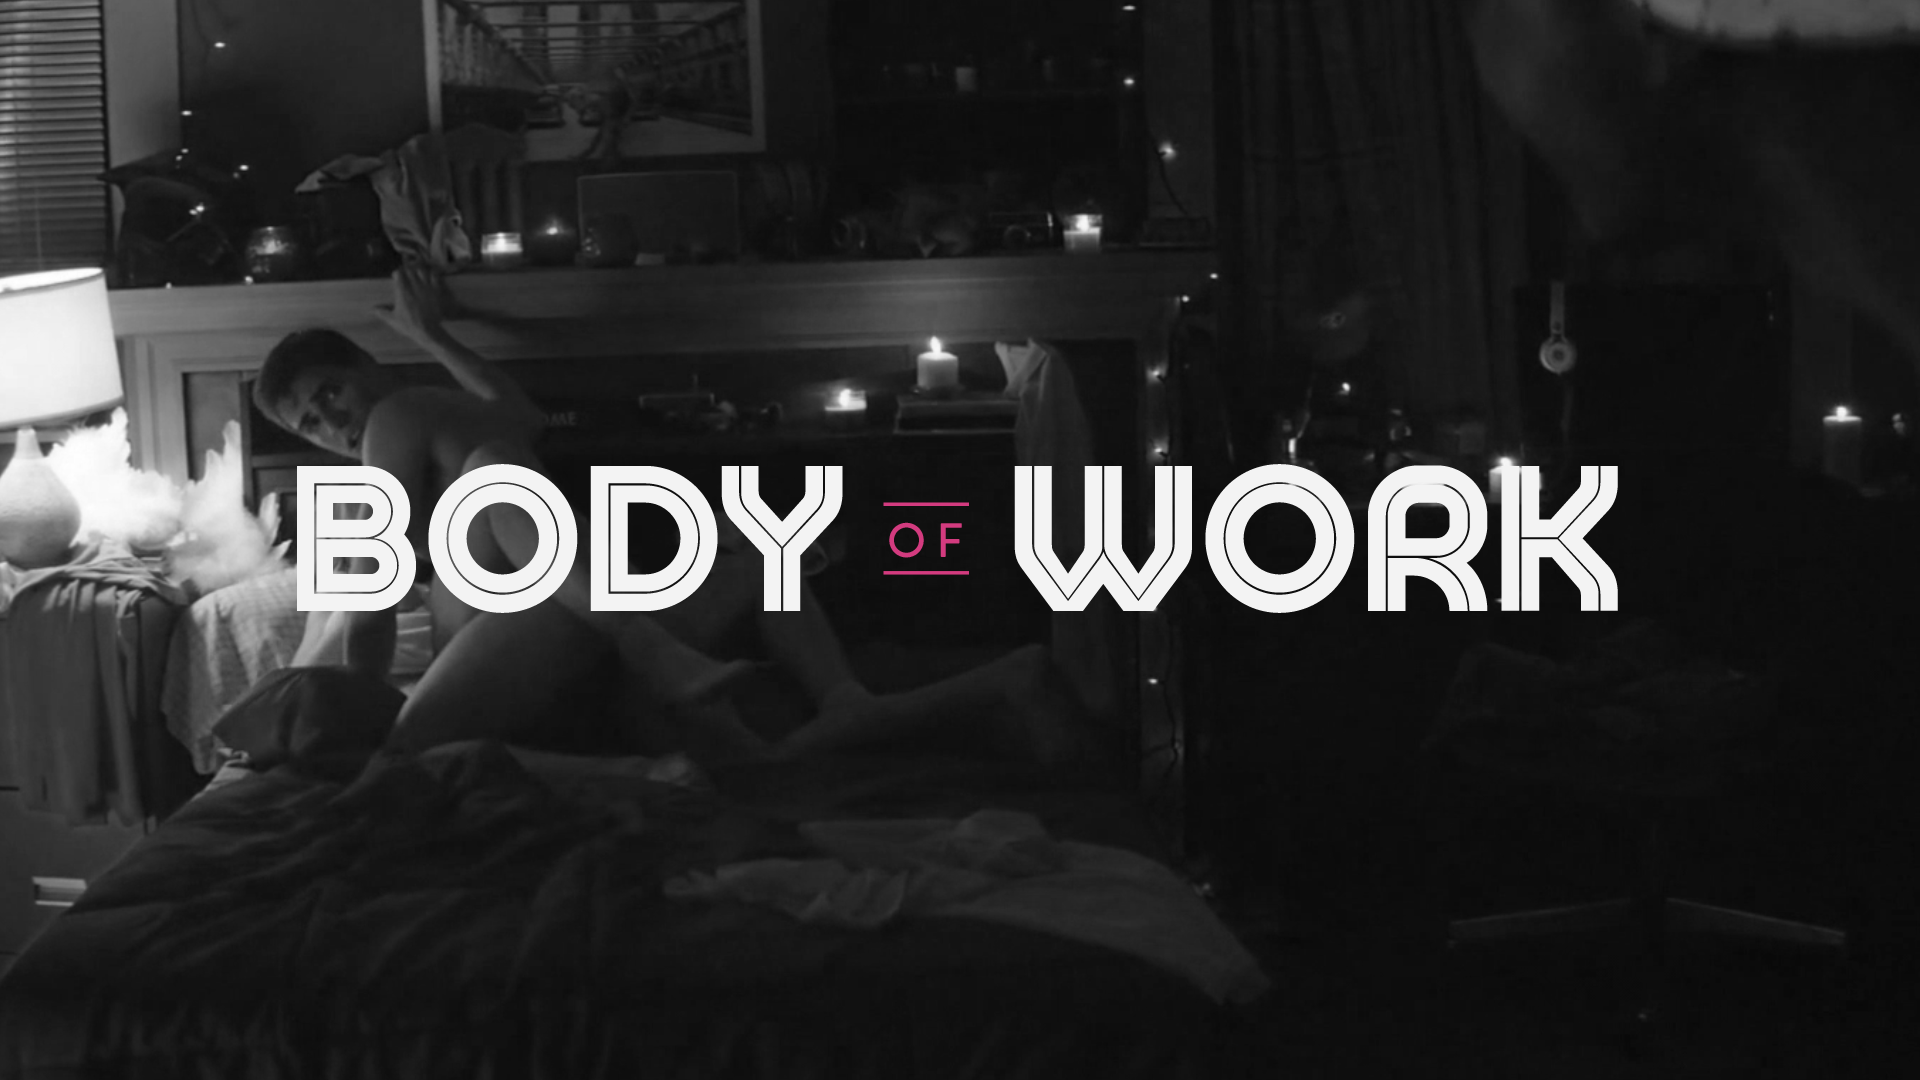 Bodyofwork davefranco 00 00 02 16 still002 nude preview image